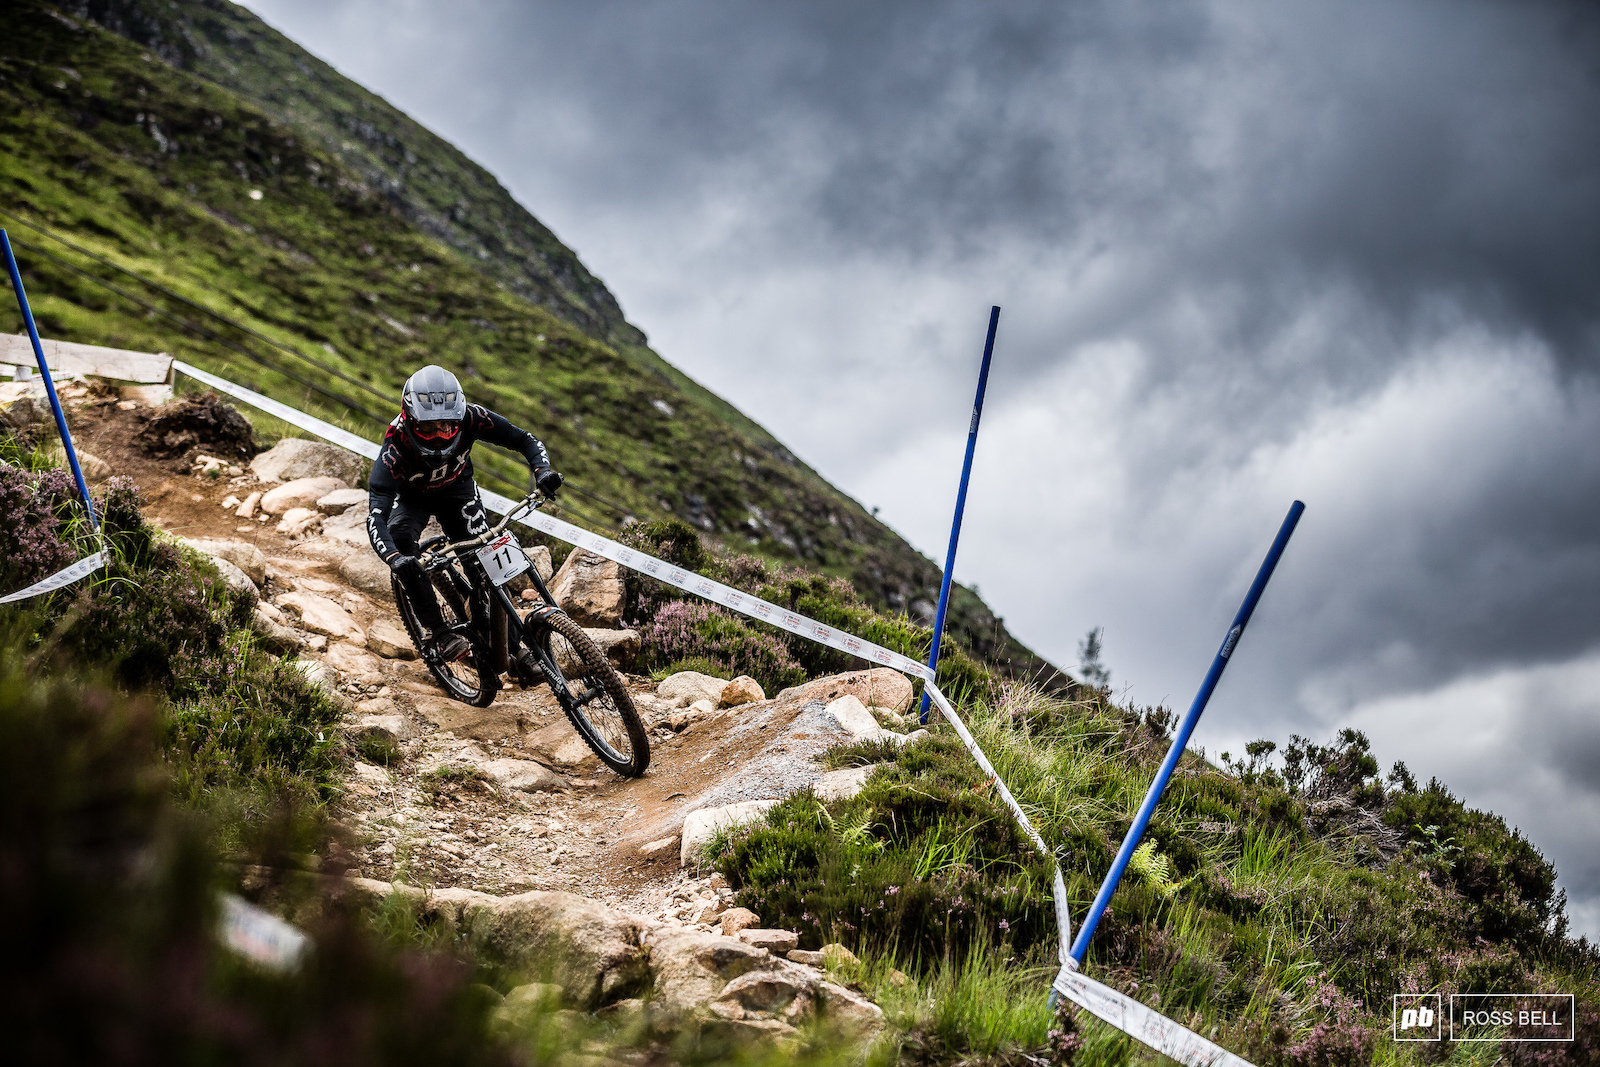 The weather couldn t really make up its mind this weekend. Taylor Vernon passes through oblivious to the moody skies.